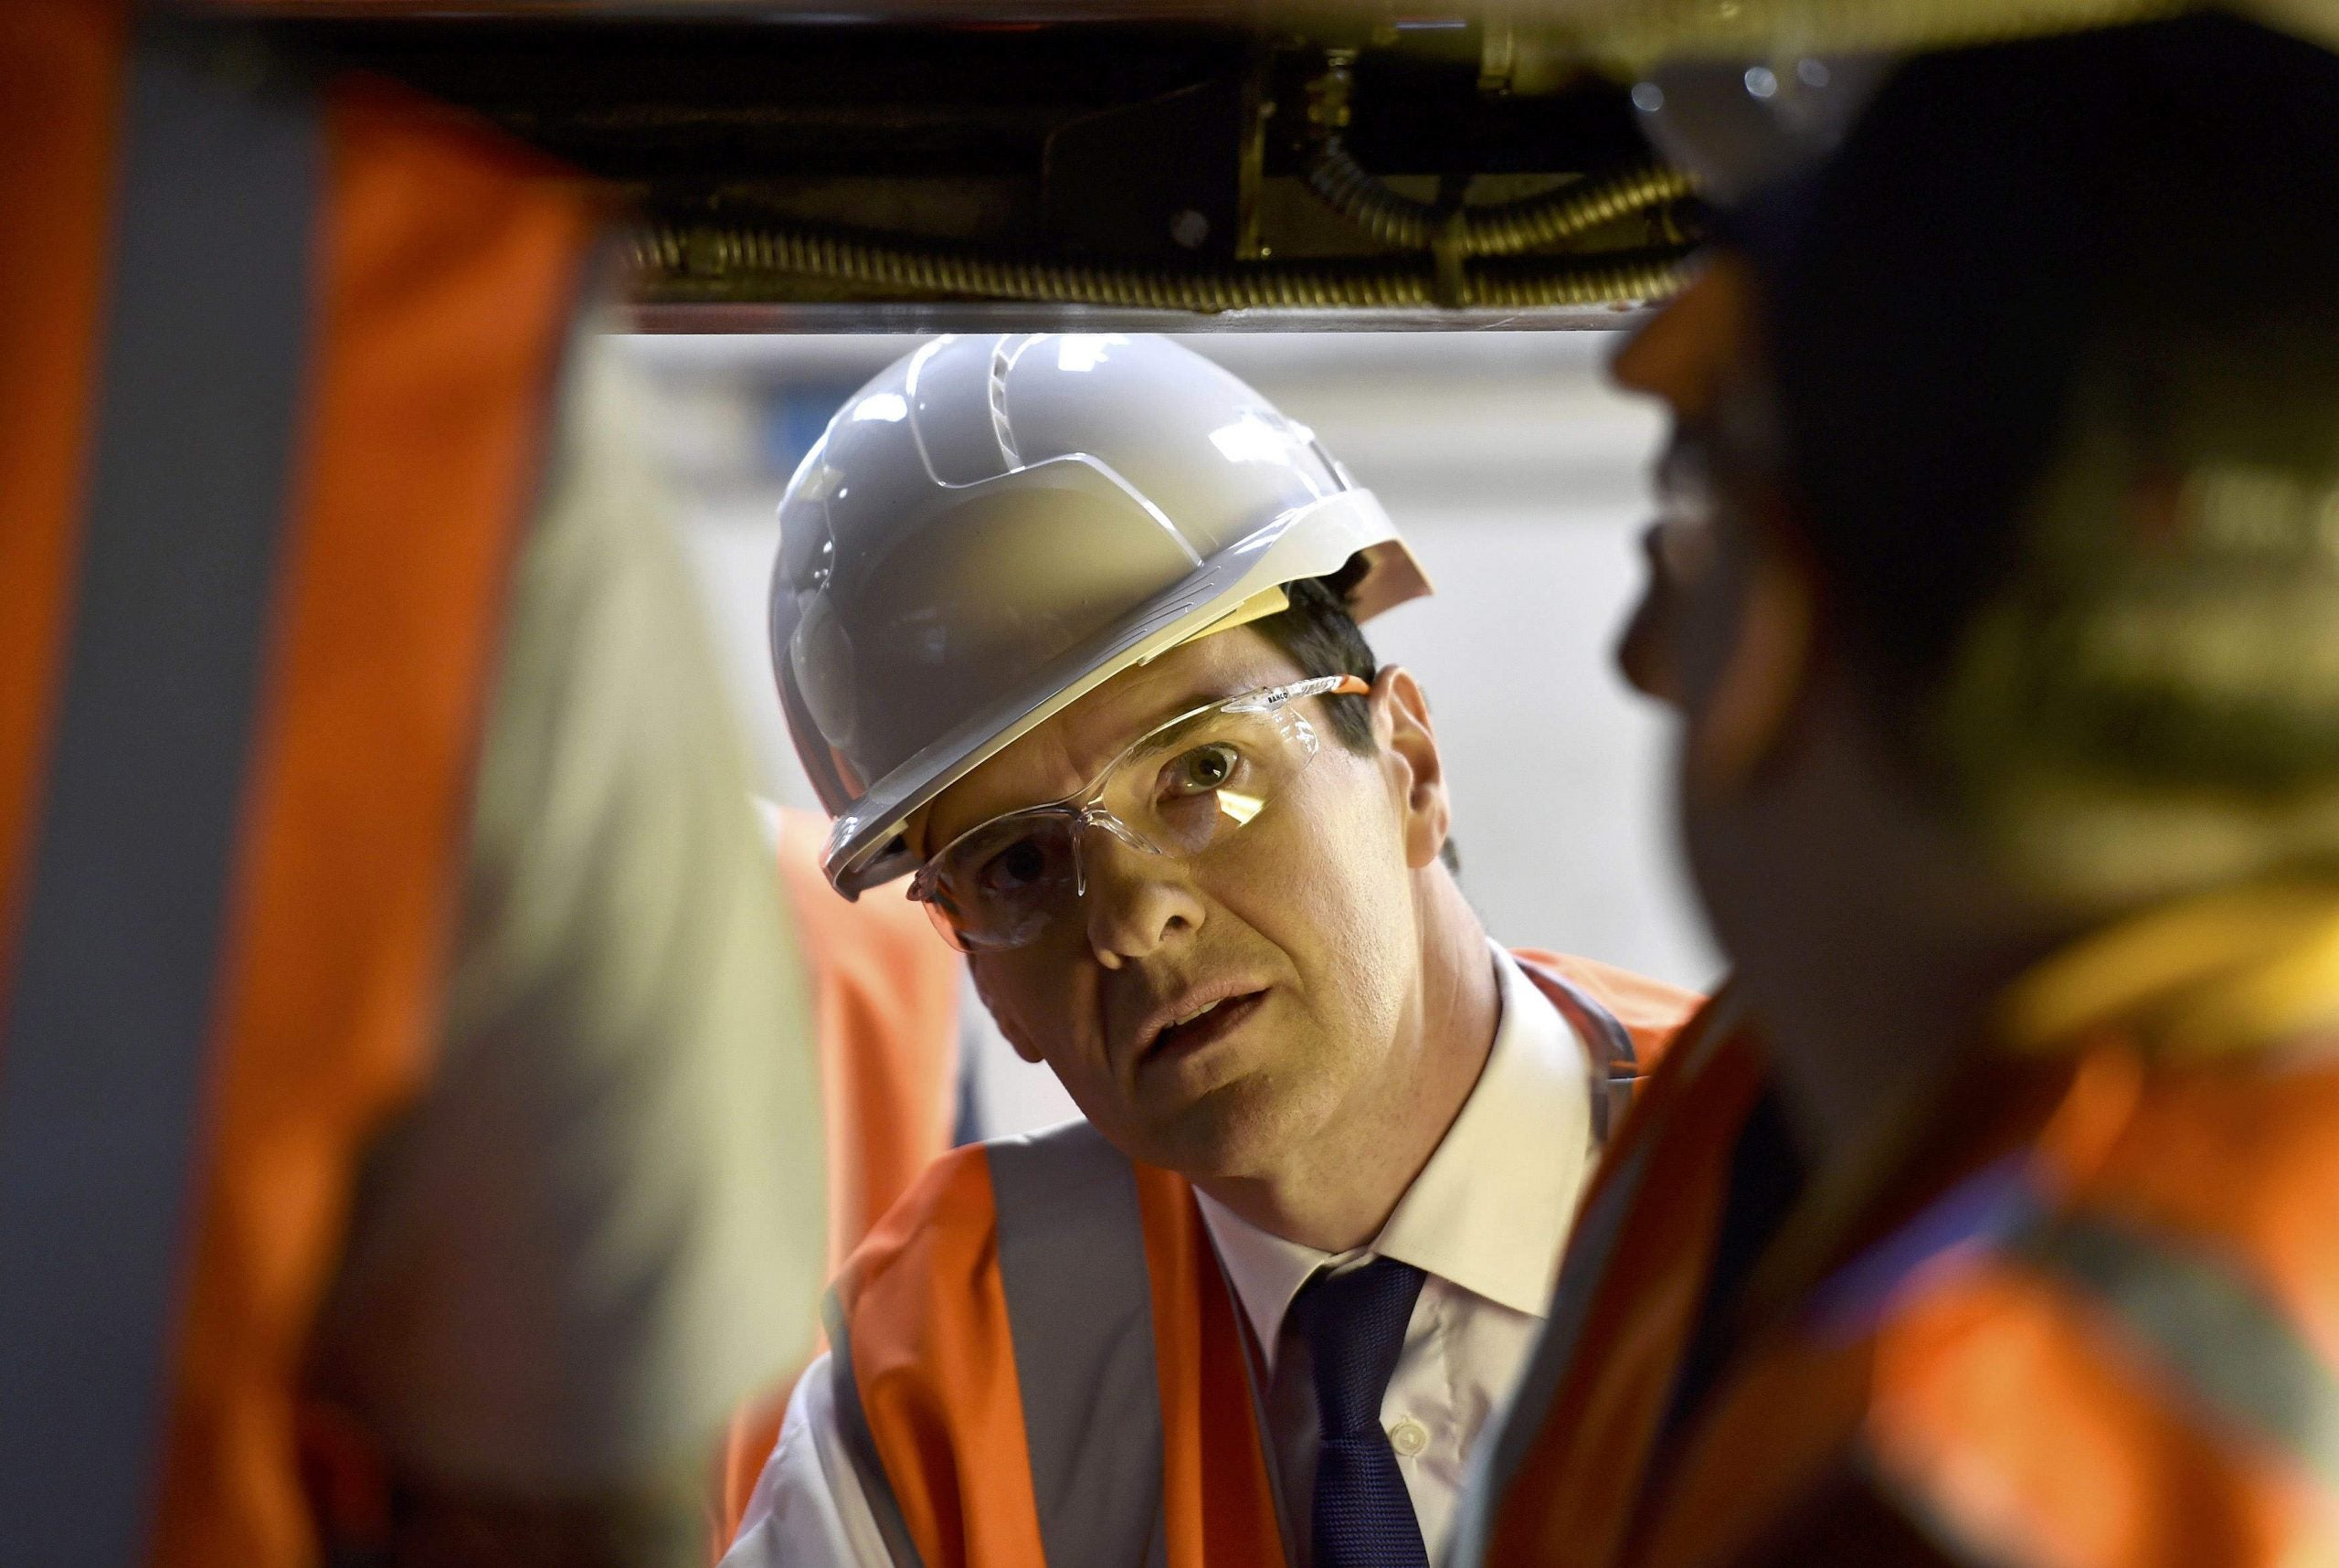 Following the unemployment figures, has George Osborne's recovery run out of steam?